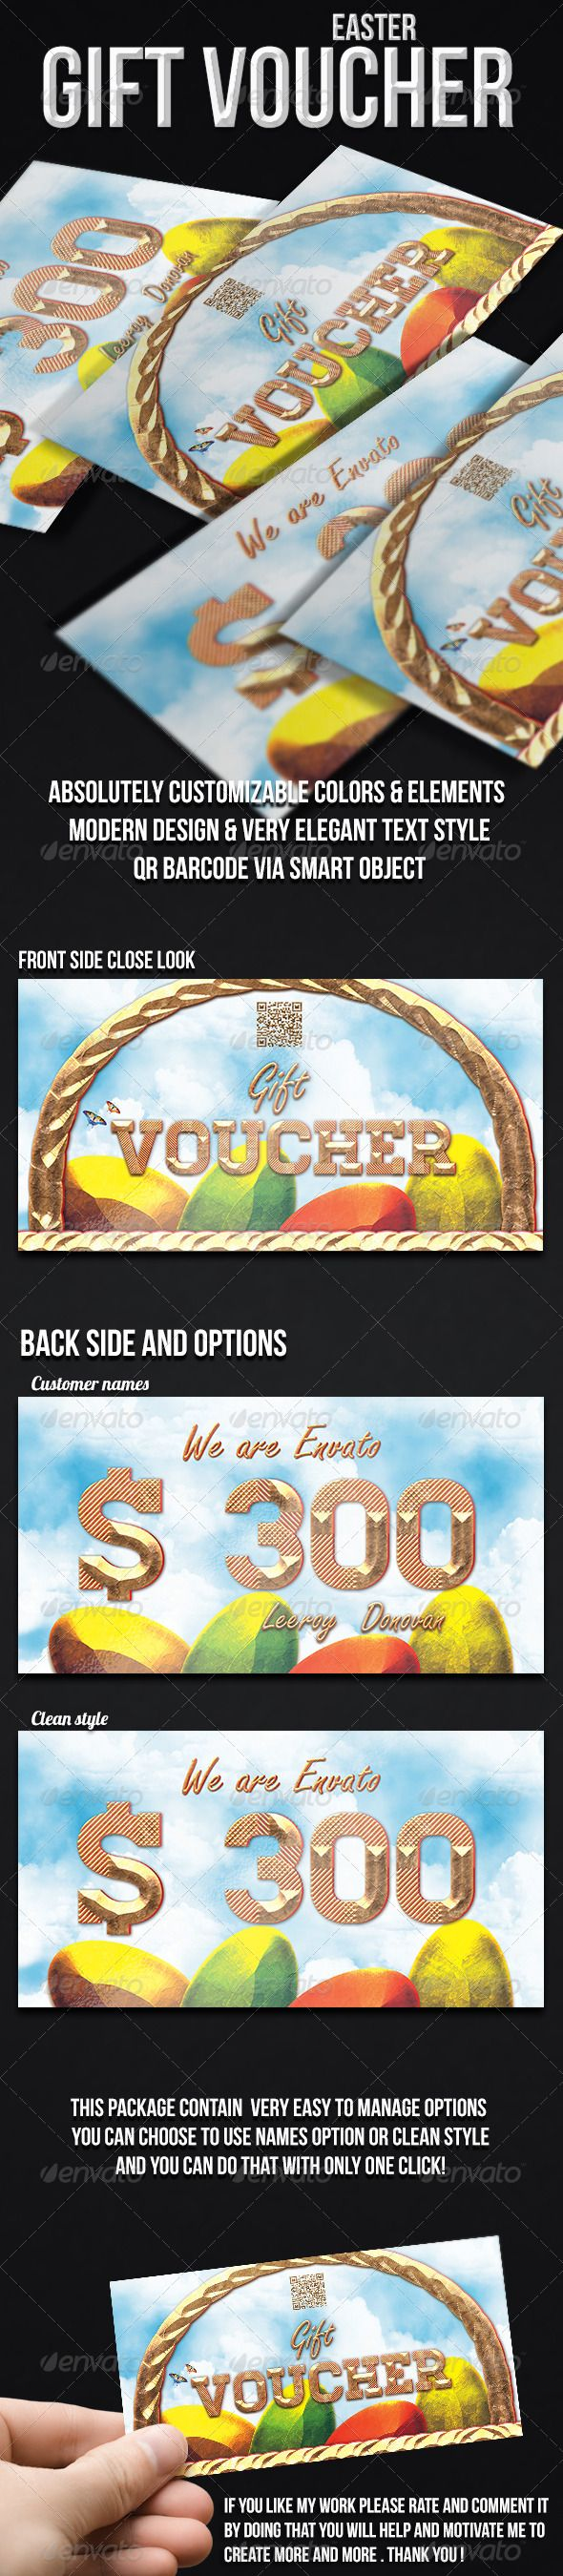 53 best gift voucher images on pinterest xmas gifts gift cards easter gift voucher negle Choice Image